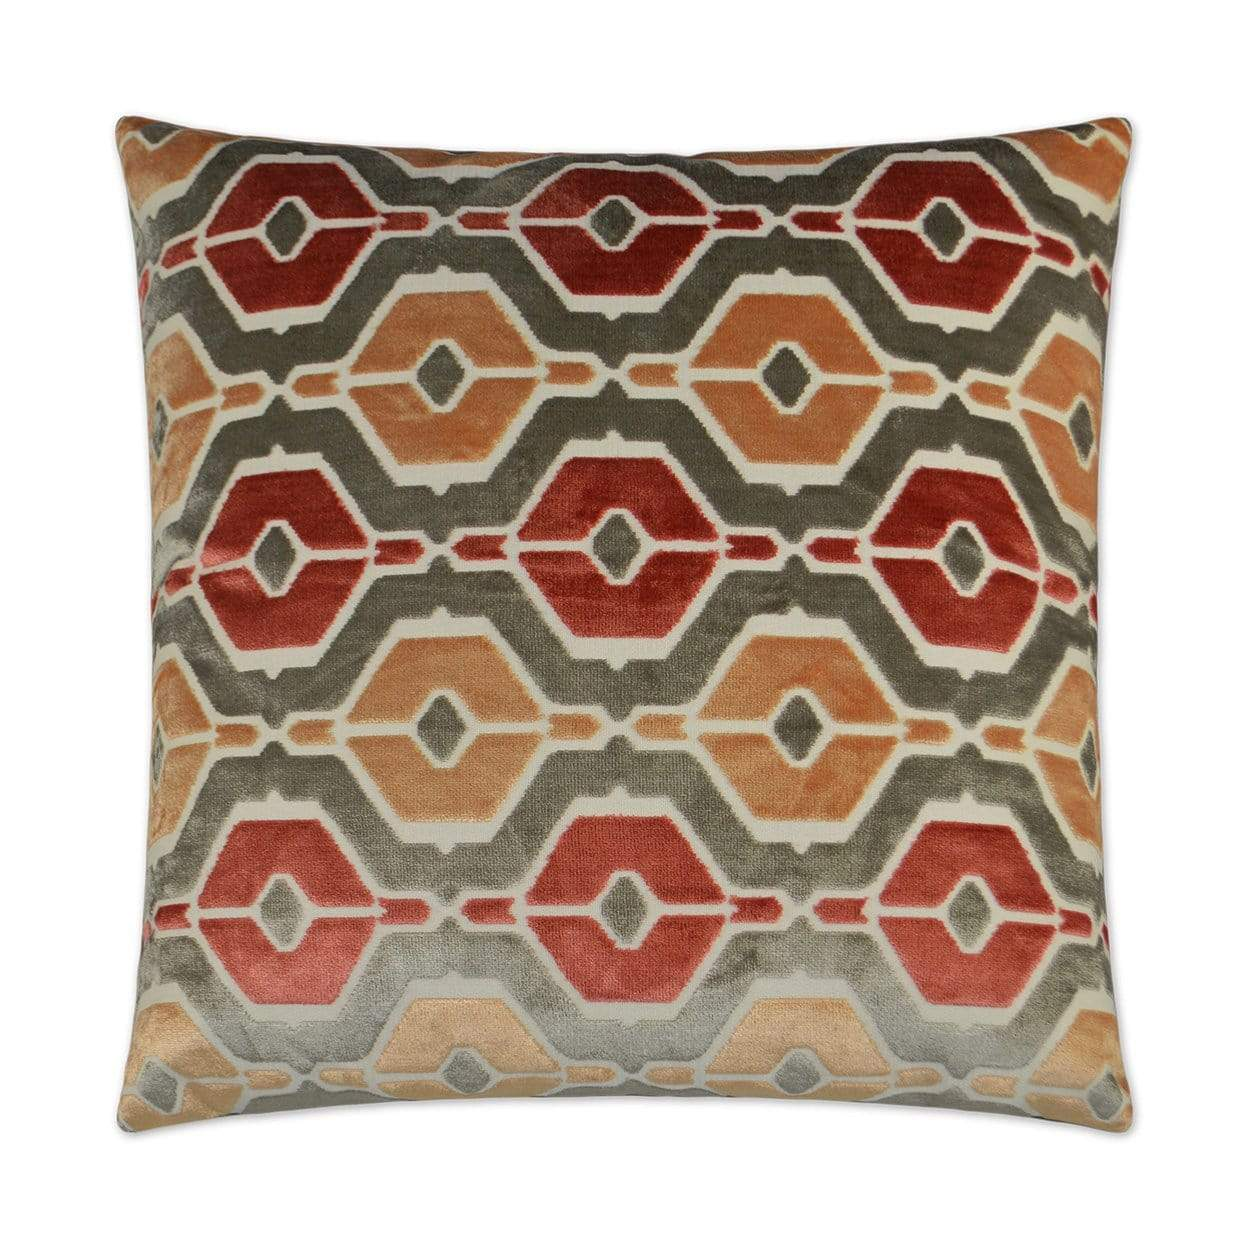 D.V. Kap D.V. Kap Dellan Pillow - Available in 2 Colors Coral 2942-C